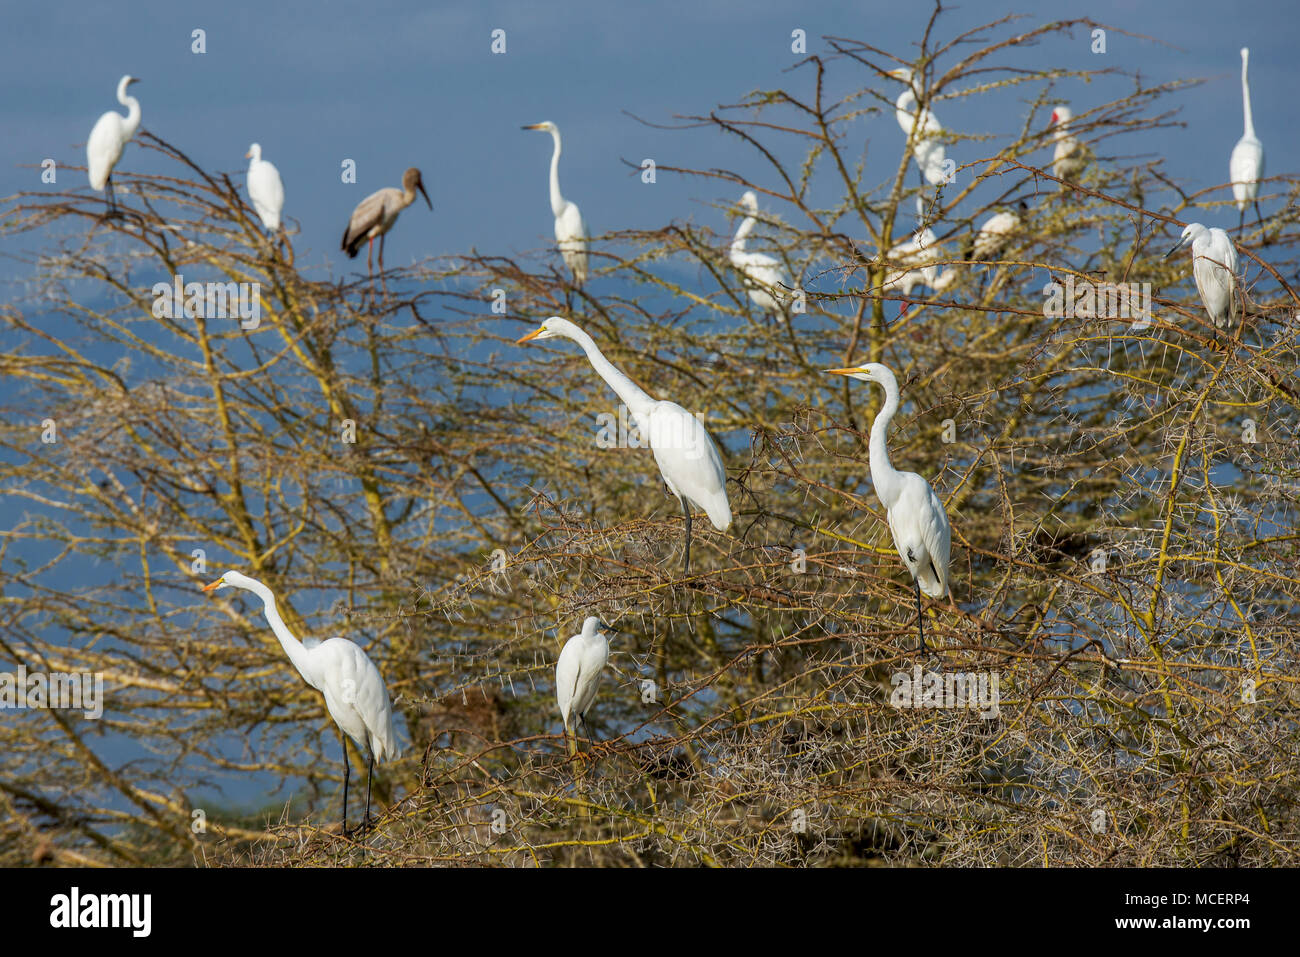 GREAT WHITE EGRETS (ARDEA ALBA) PERCHED IN TREE TOP, LAKE MANYARA NATIONAL PARK, TANZANIA - Stock Image